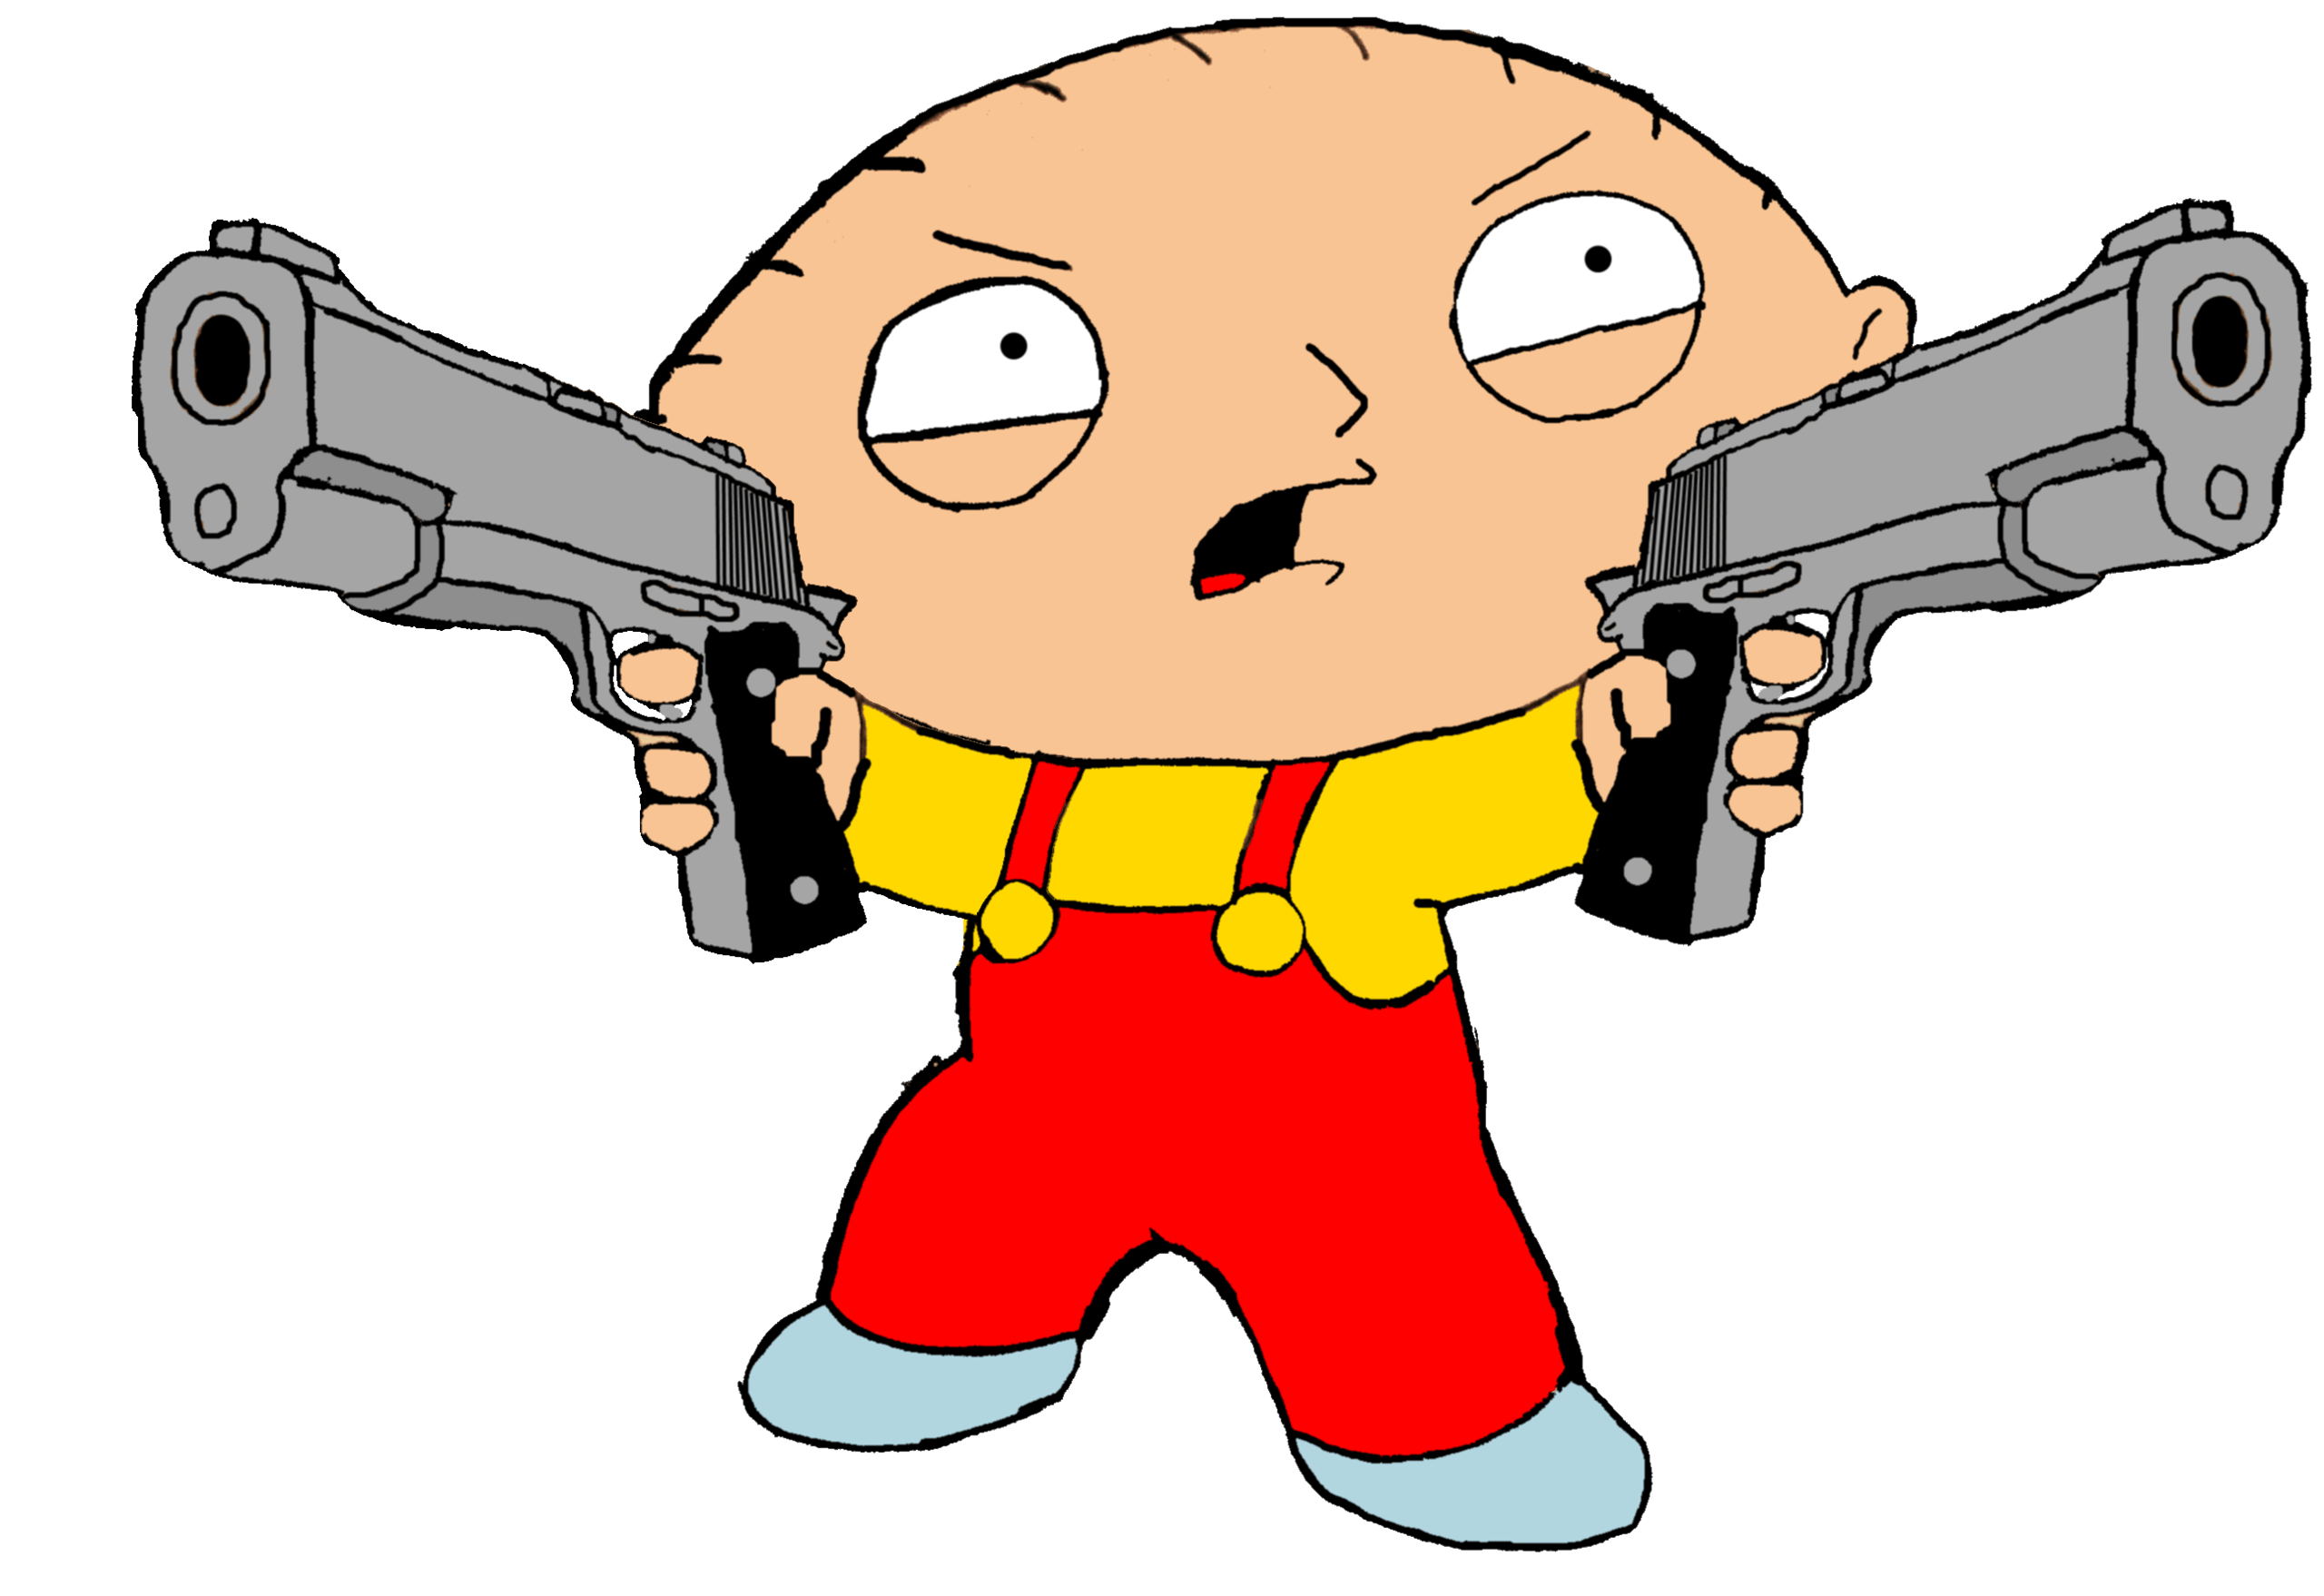 stewie-family-guy-29507418-2560-1758.png (2560×1758) | movies ...